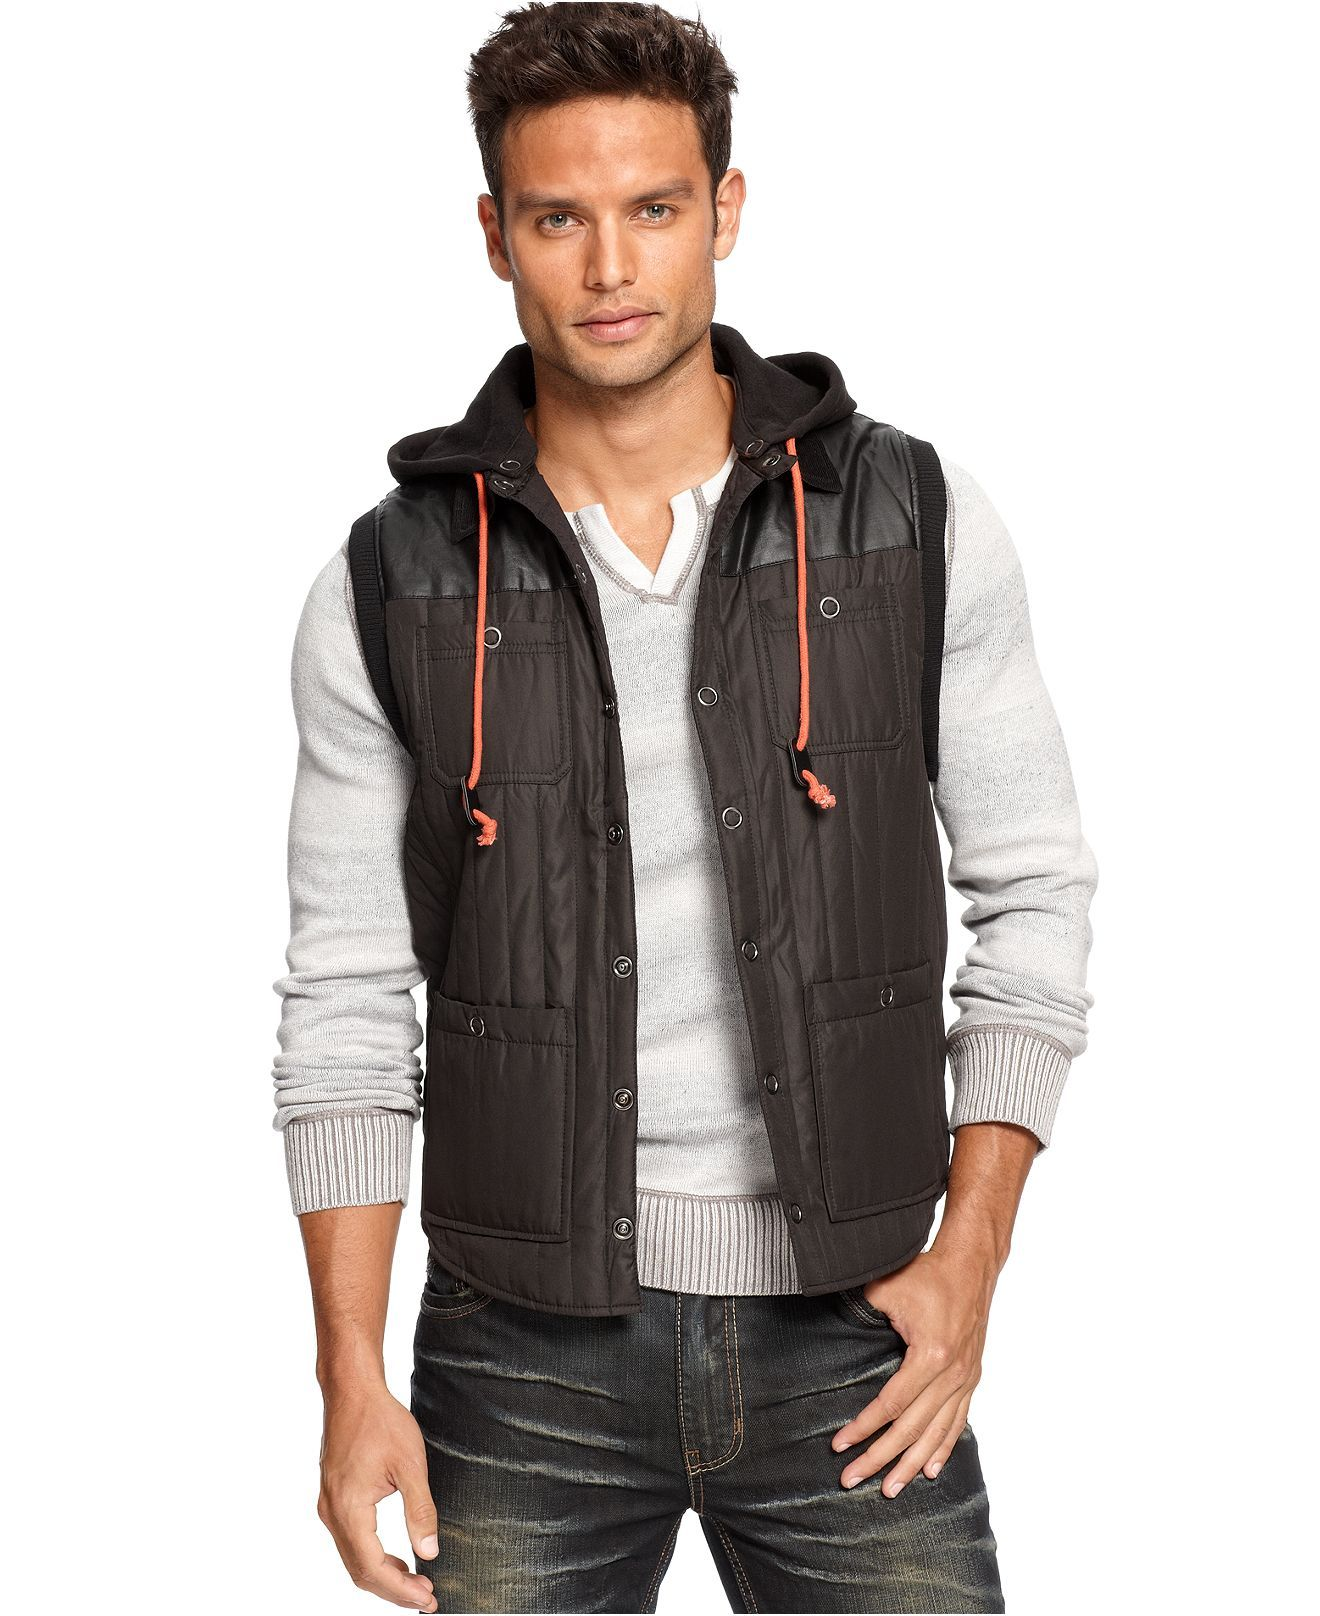 INC International Concepts Vest, Mendel Quilted Vest - Mens Coats ... : quilted vests for men - Adamdwight.com